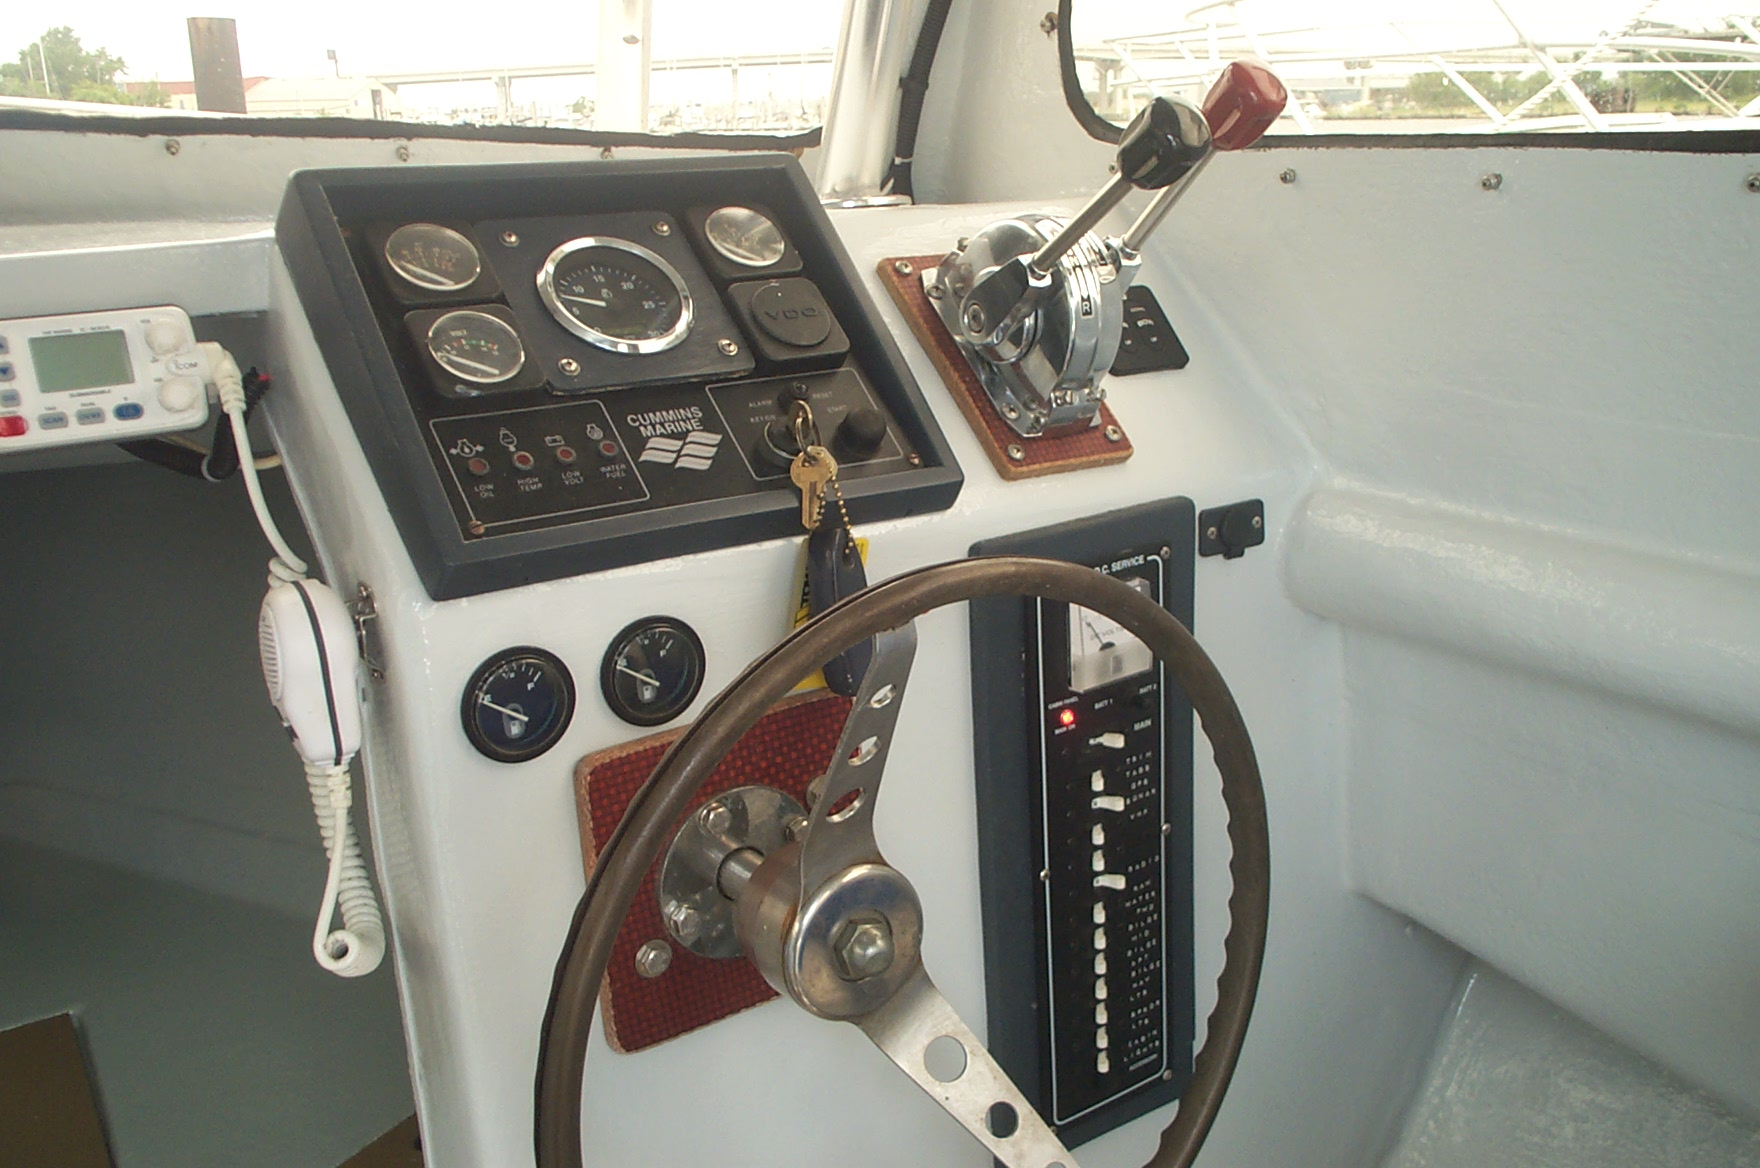 25' Kencraft Buxton Pilot House/Cummins Diesel/Tuna Tower w/ Controls-picture-021-jpg